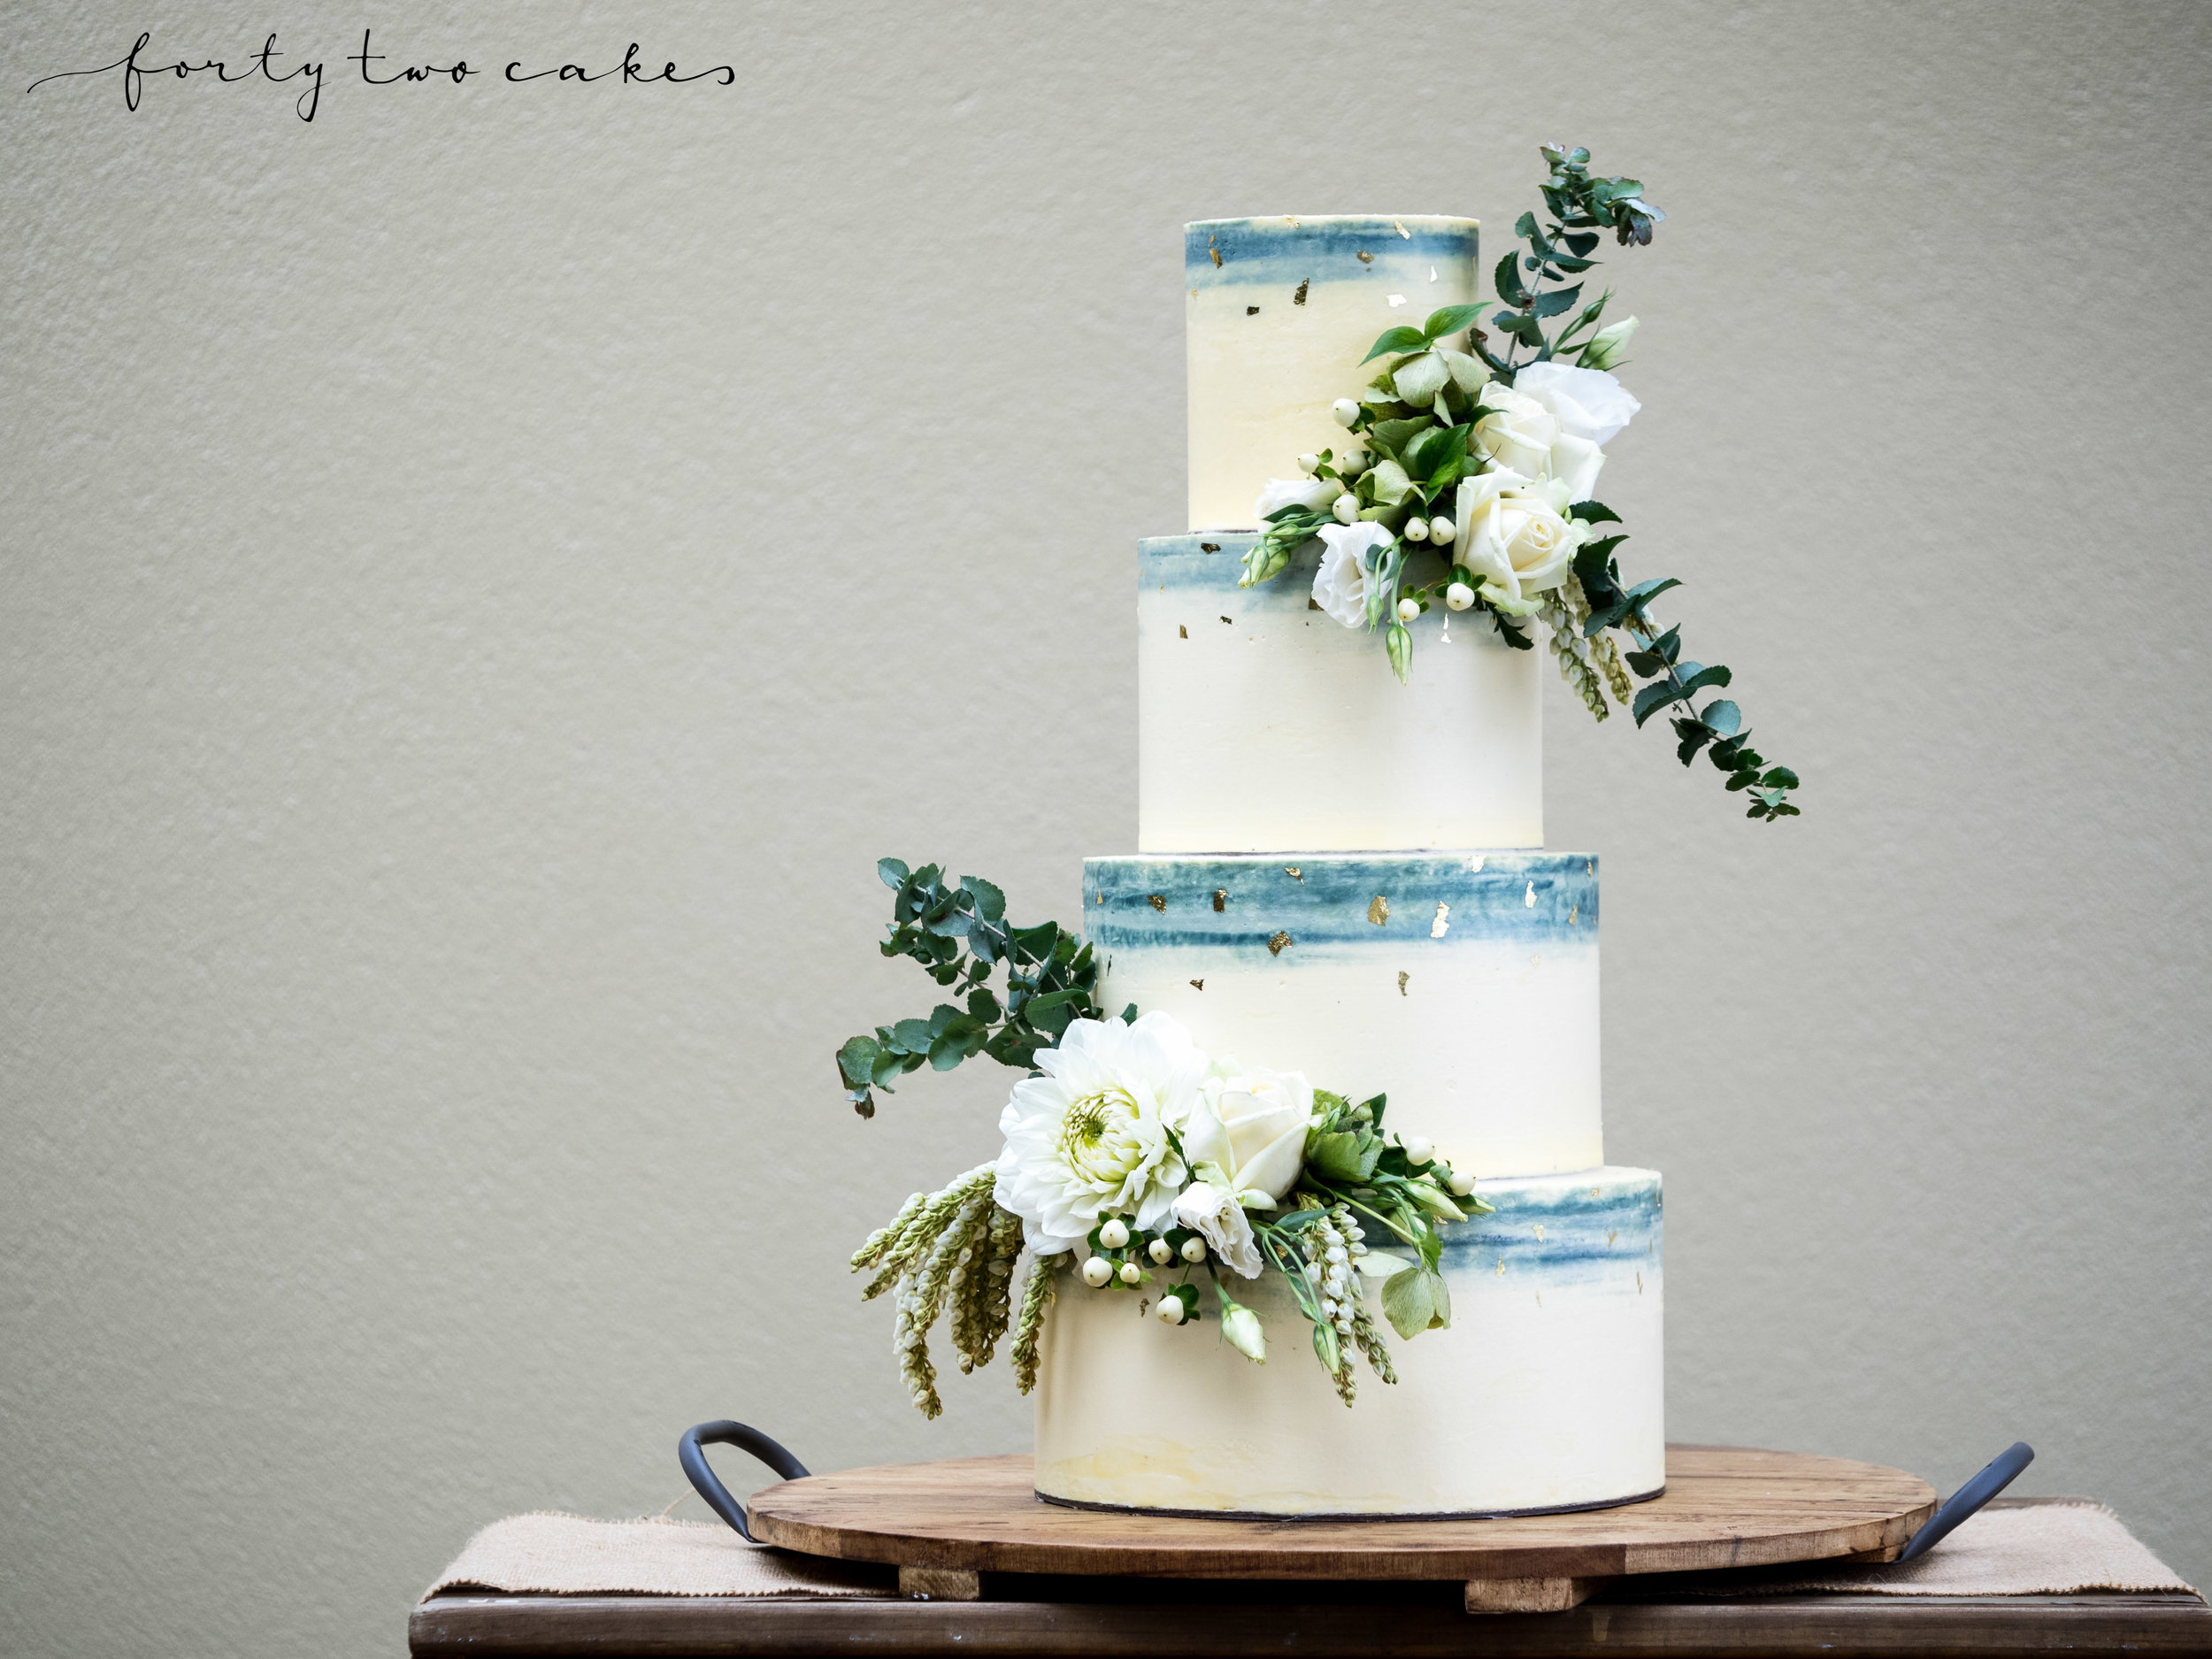 Forty-Two Cakes - Front Page-01-5.jpg